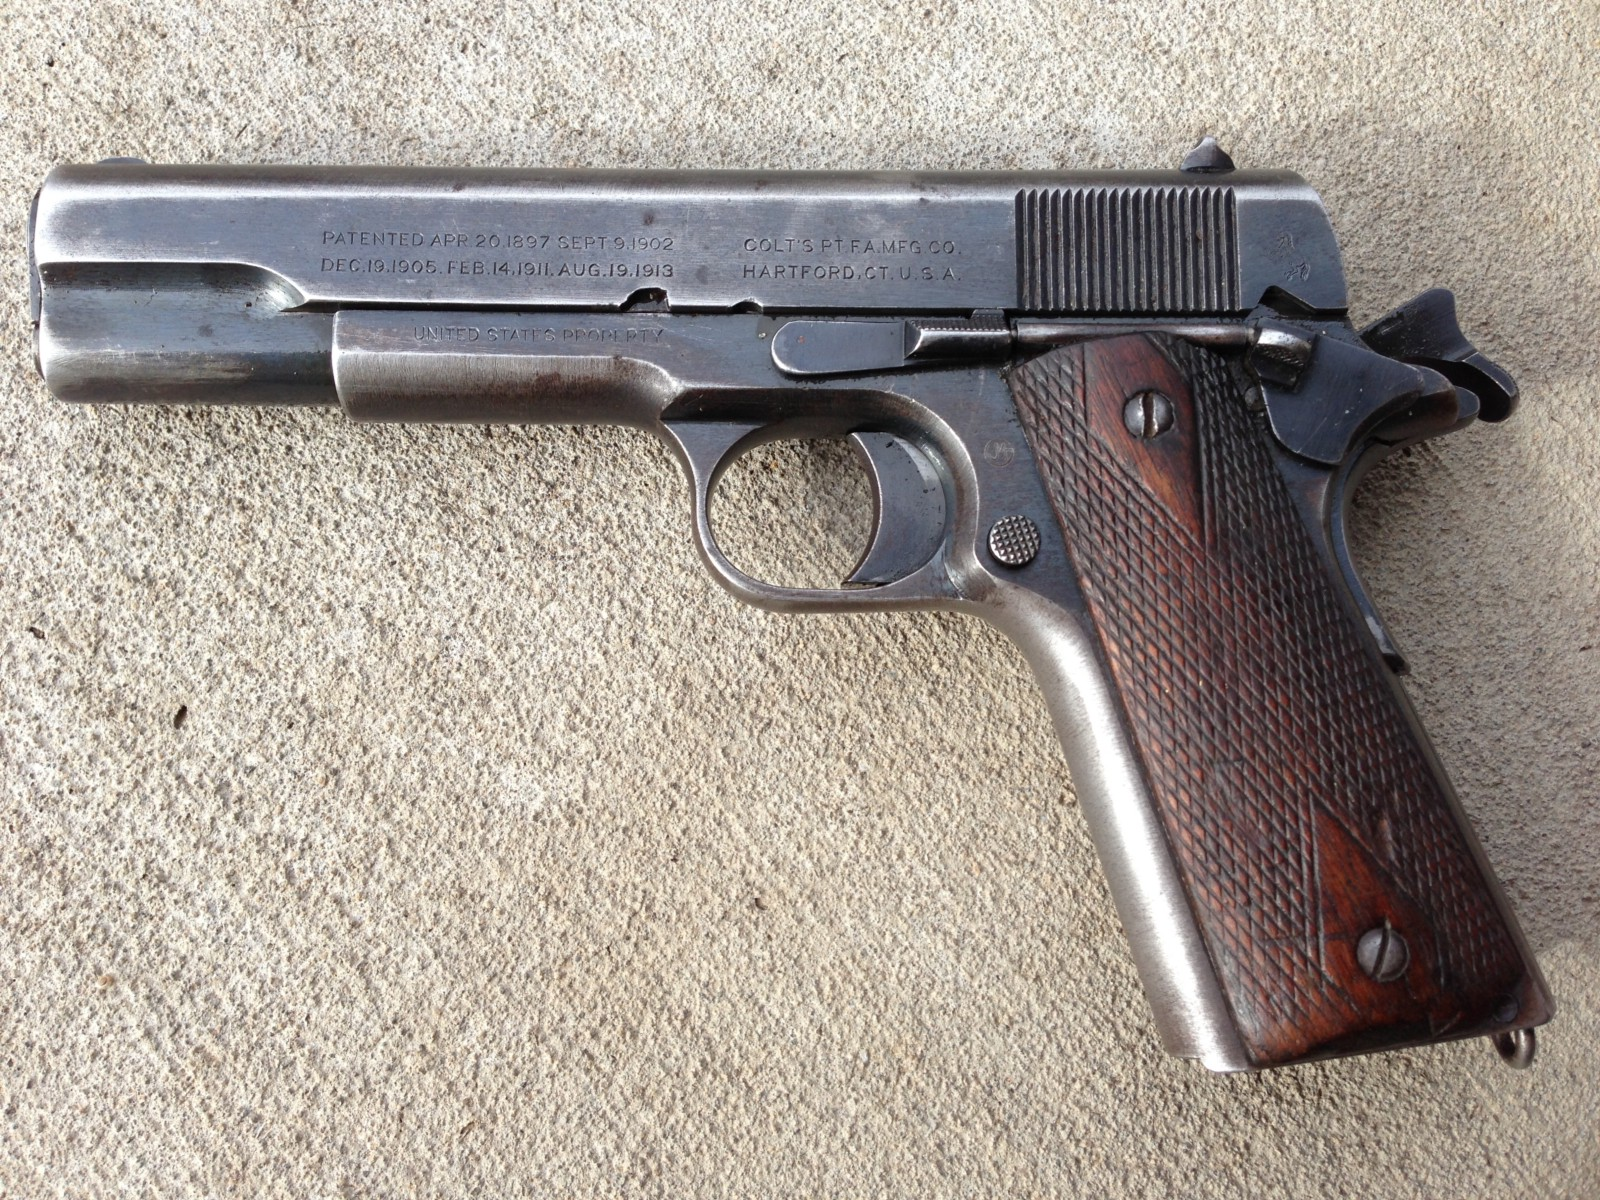 Original 1911 pistol. Kyle mizokami photo